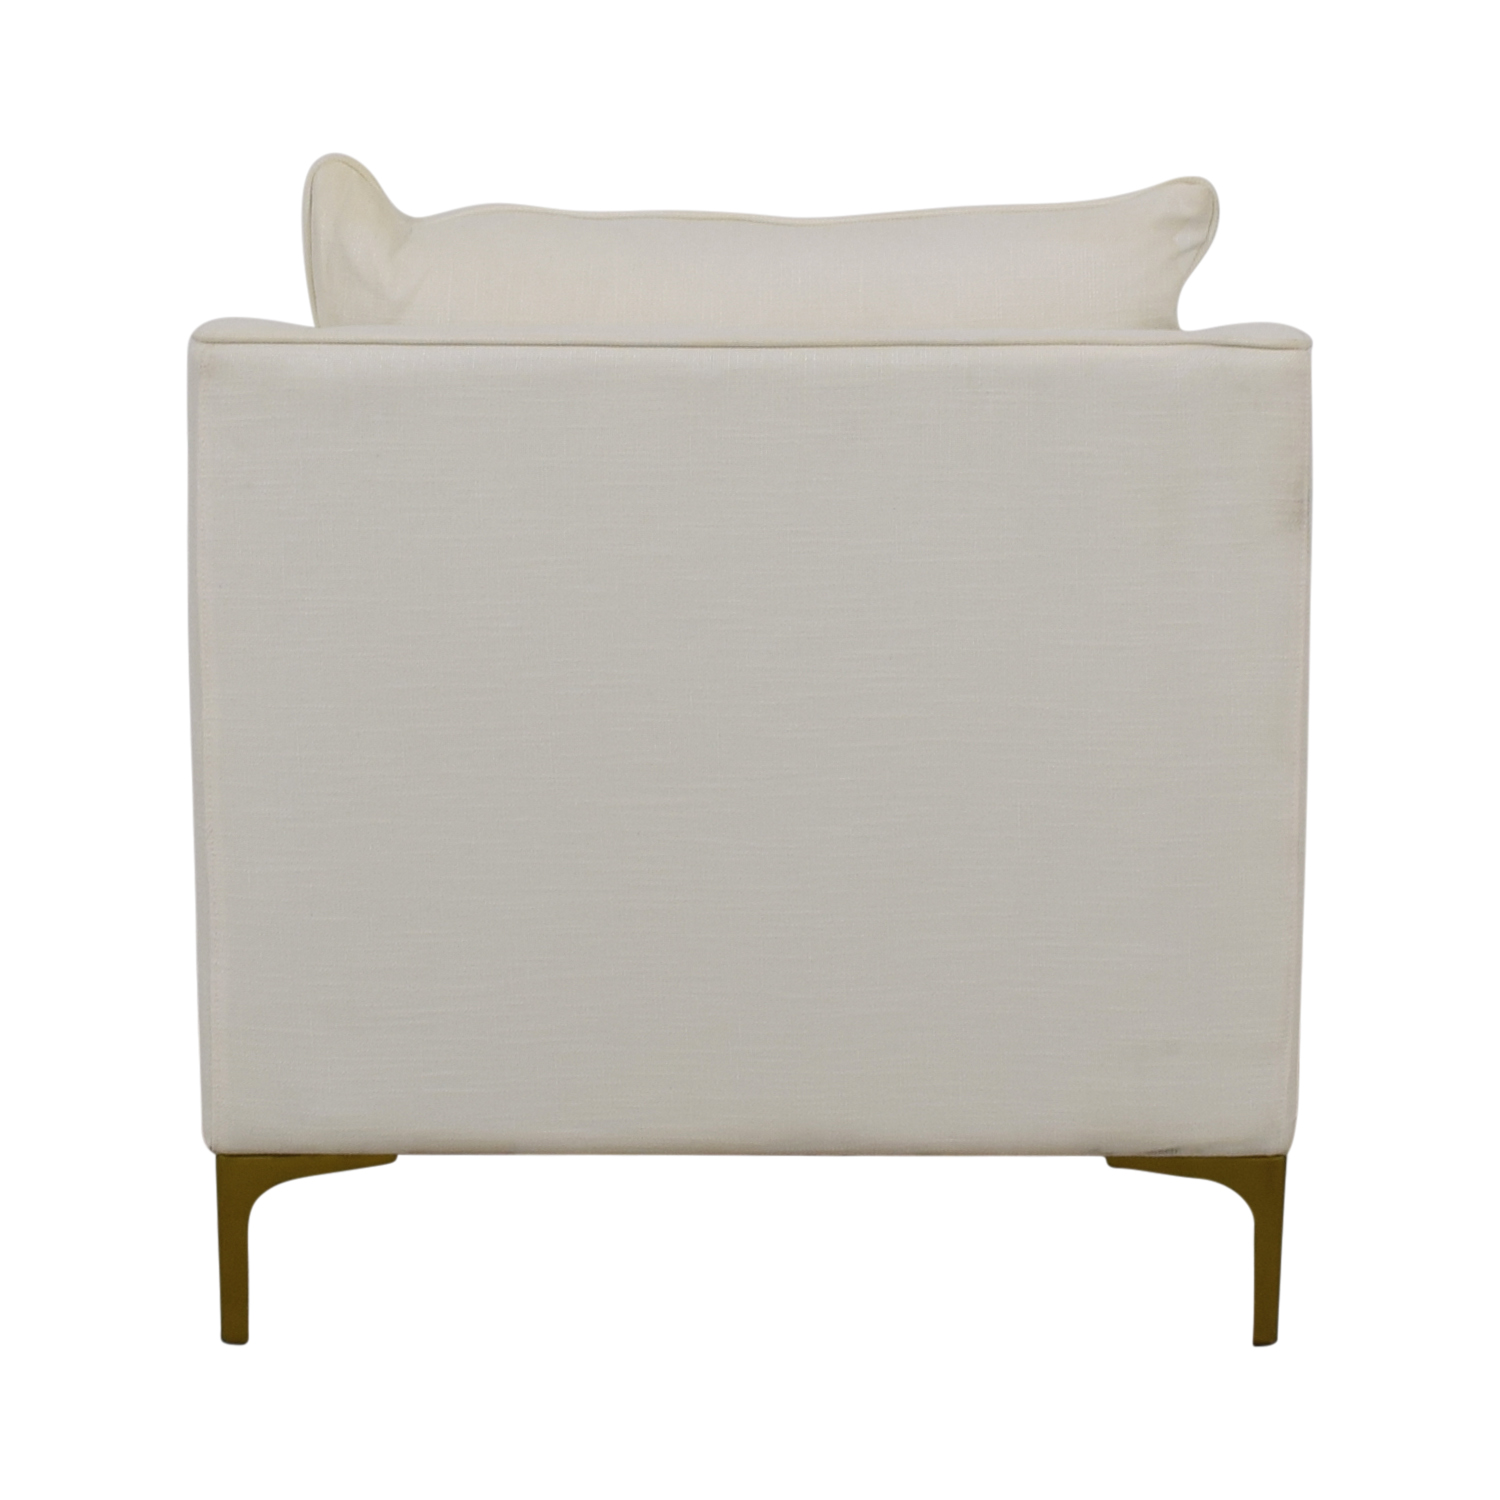 Caitlin Petite White Accent Chair second hand